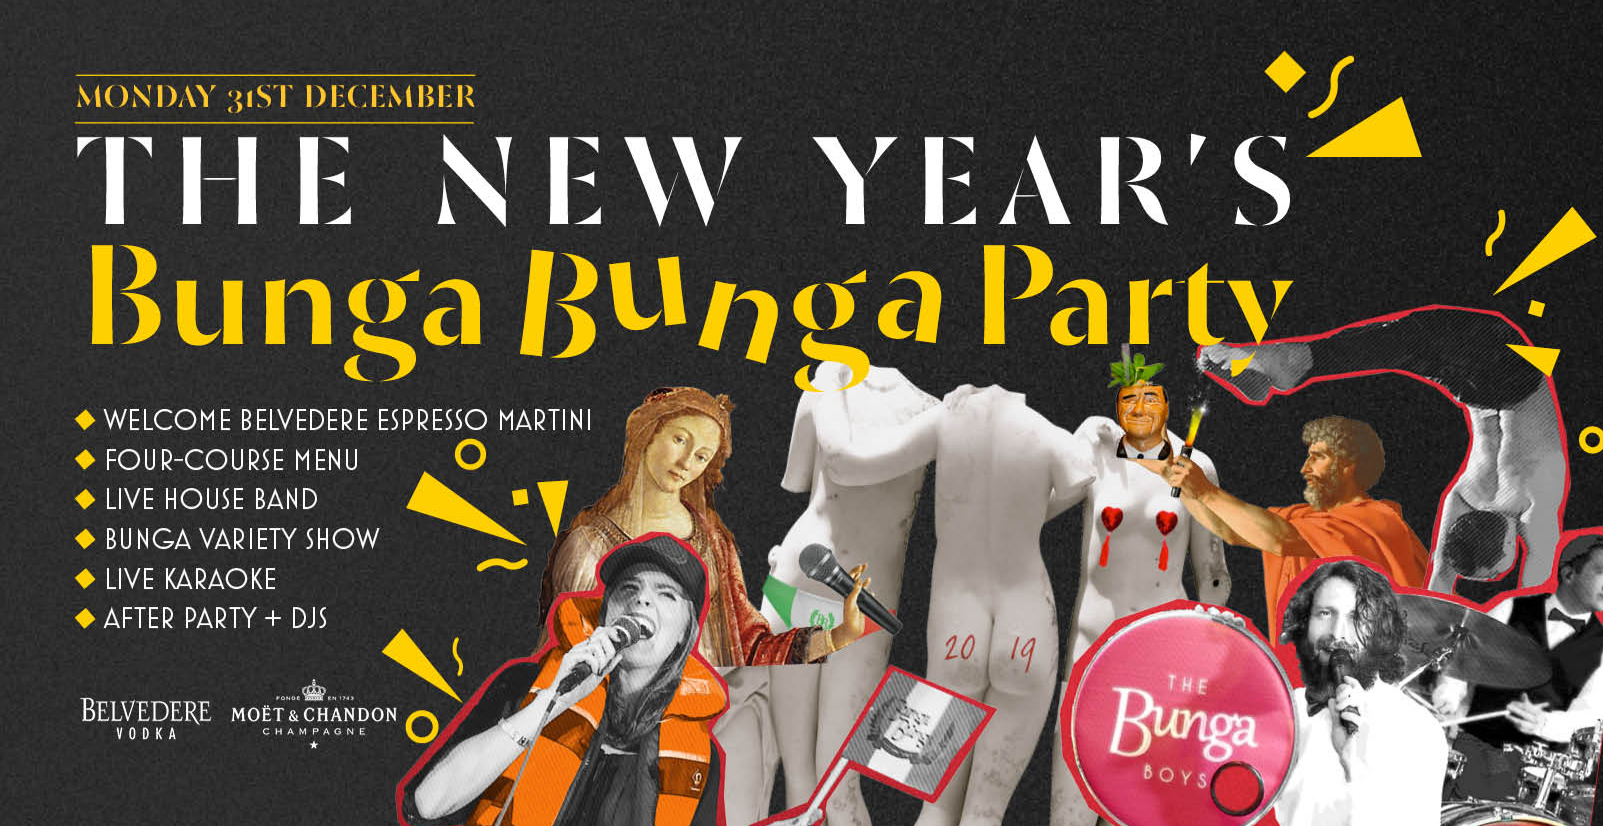 The New Year's Bunga Bunga Party